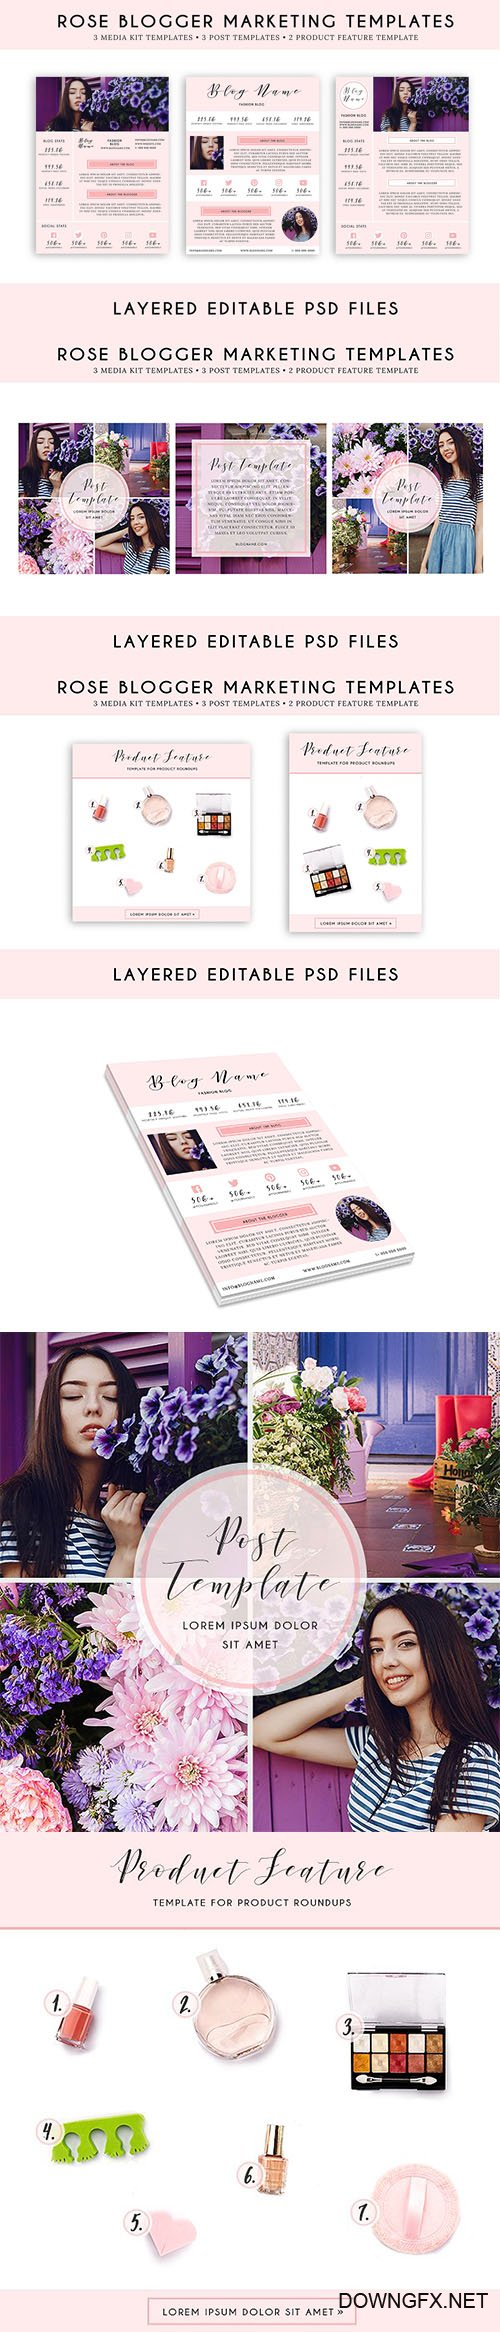 Rose Blogger Marketing Template Pack - CM 1975444